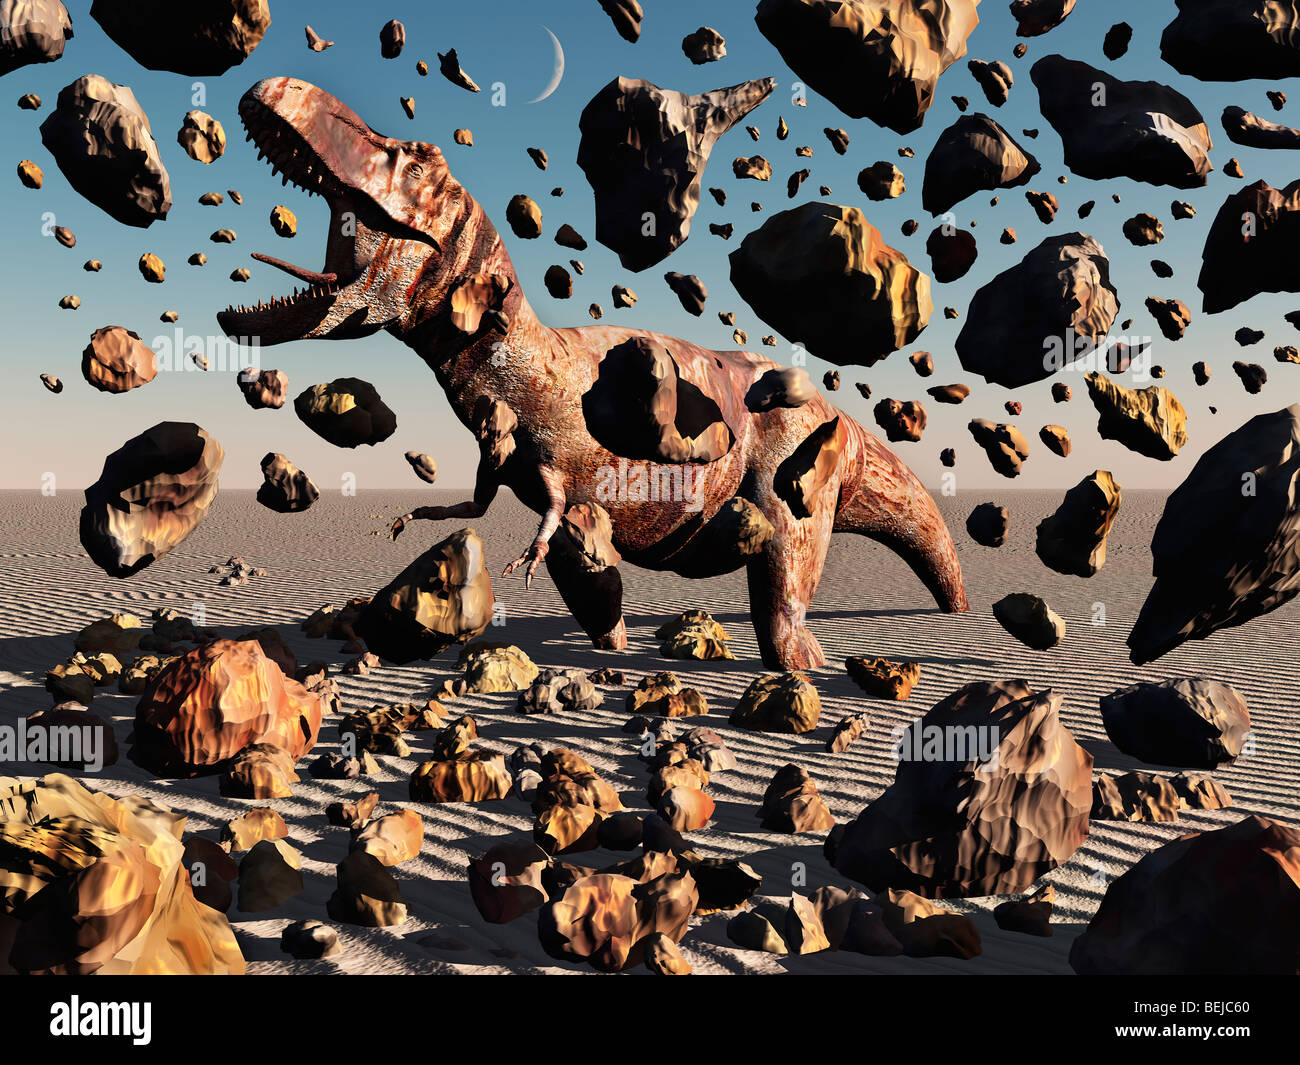 A Fossilized T Rex Dinosaur,Coming To Life. - Stock Image